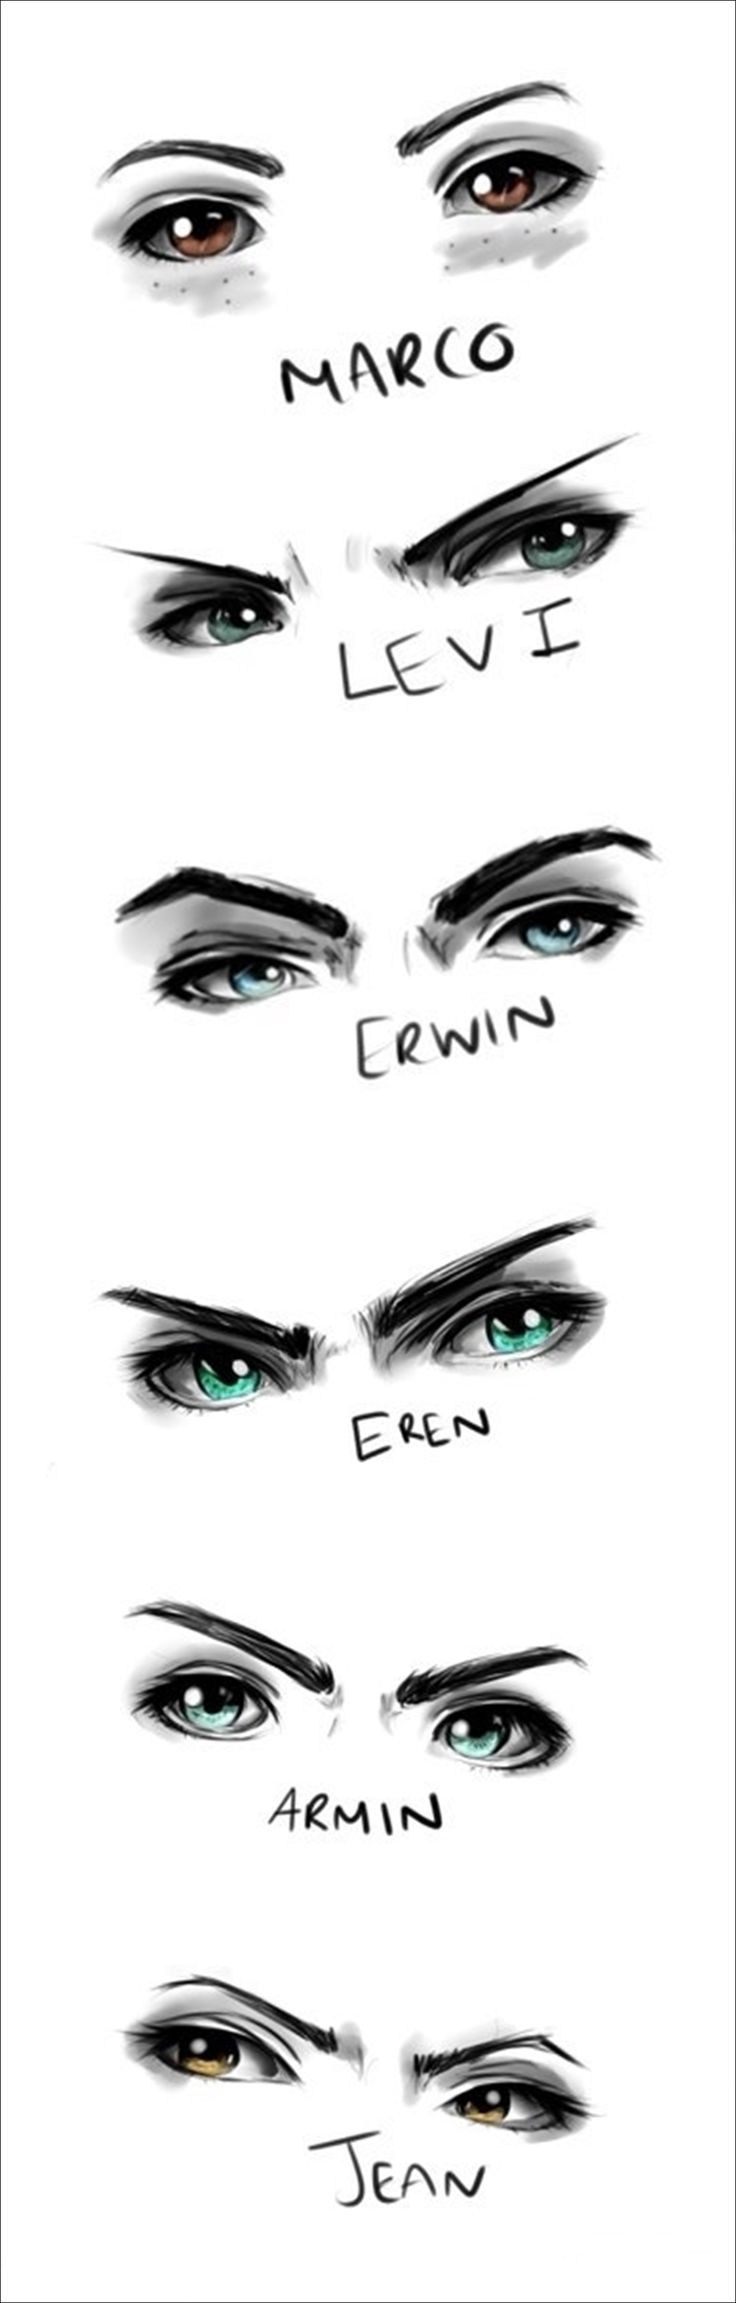 Ya this great an' all but Erwin's eyebrows need to be more....... Eyebrowie.